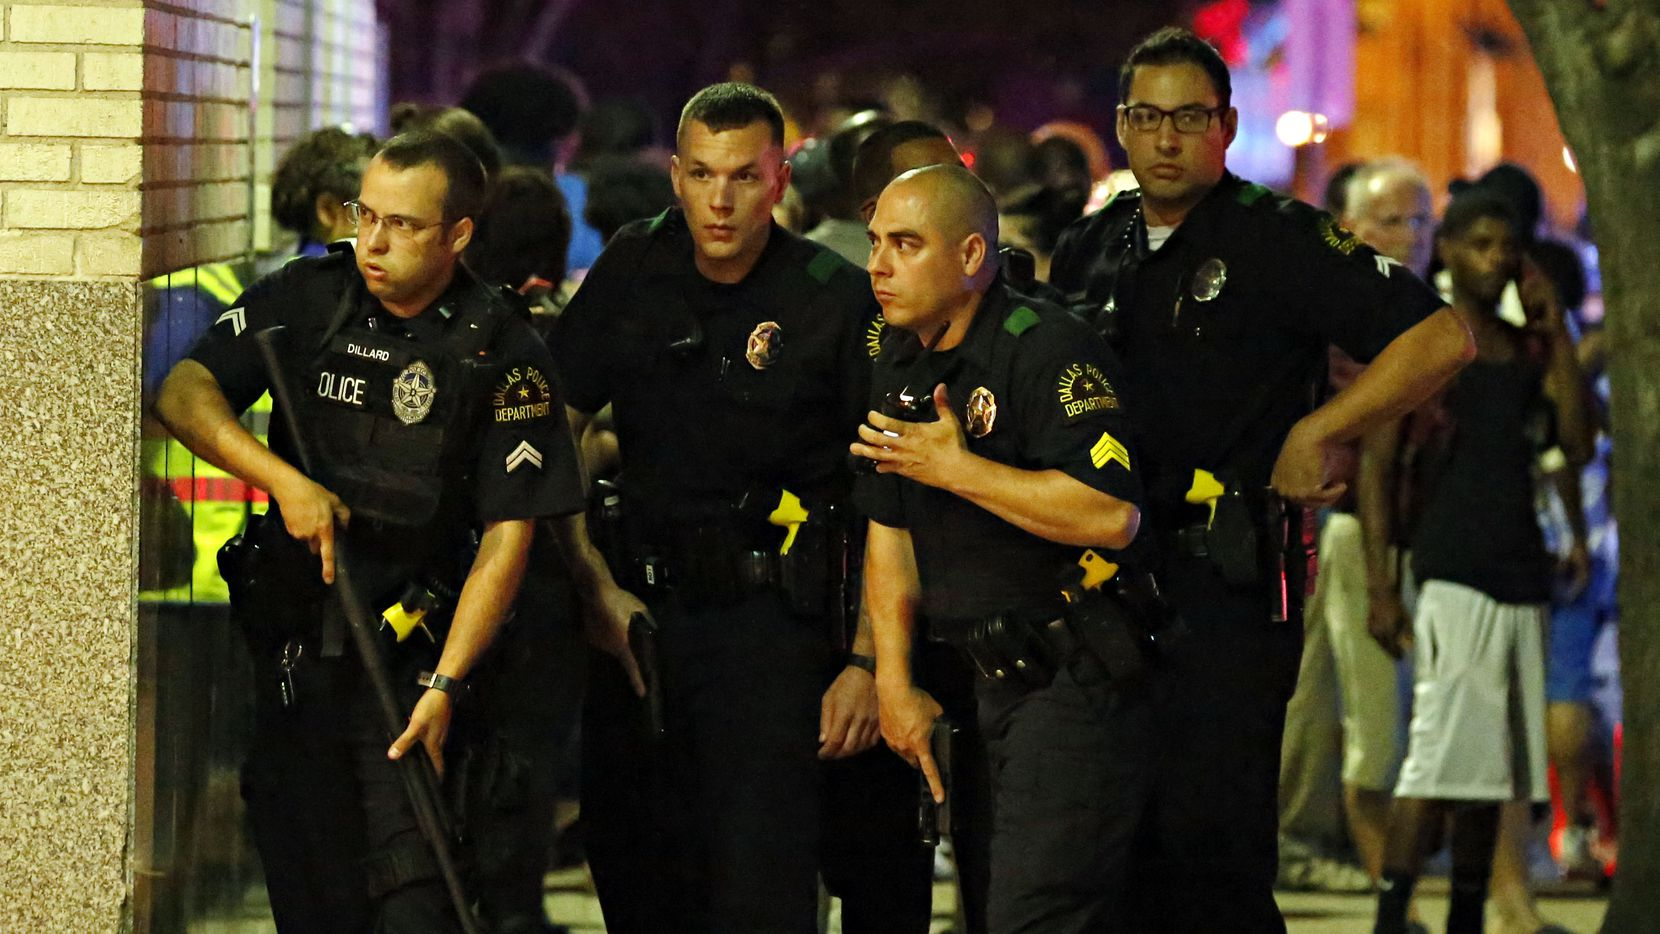 Dallas police officers prepared to enter a parking garage during the ambush July 7. Five officers died after a lone gunman opened fire on police downtown.